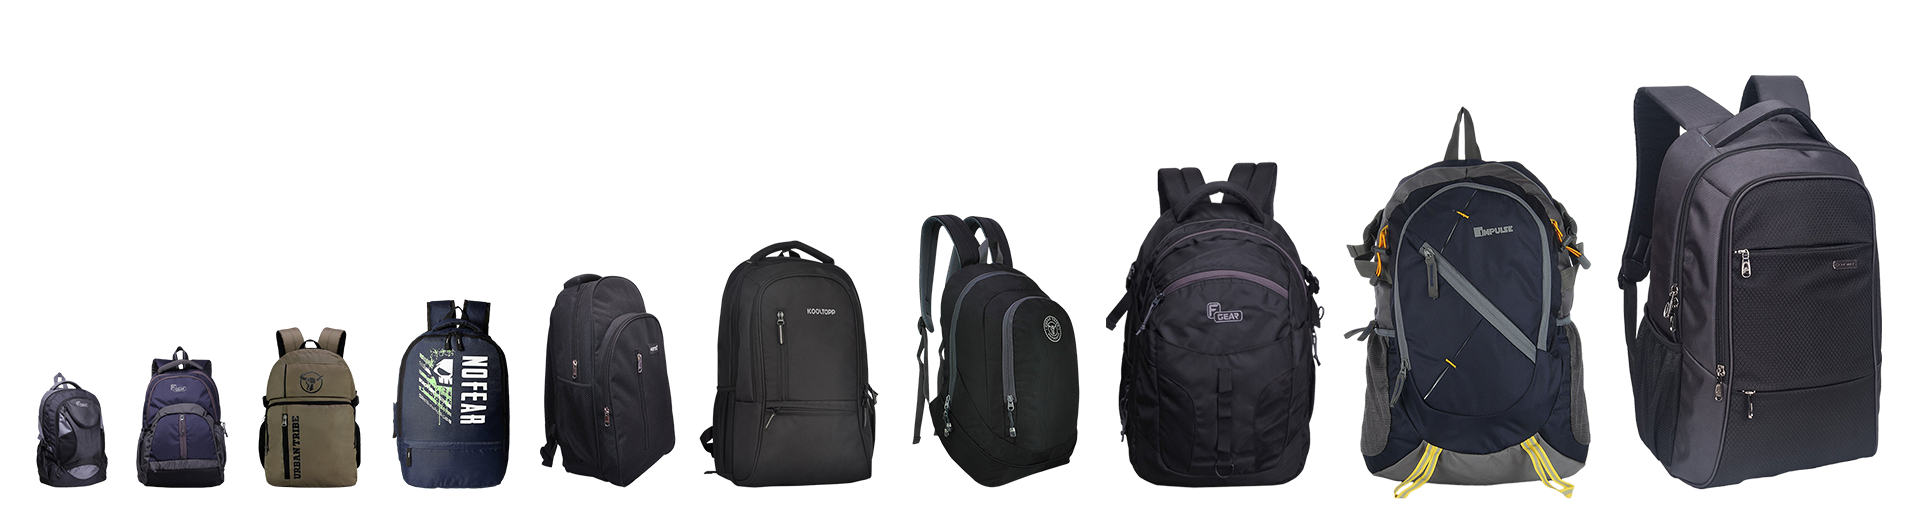 08316d7258b6 Which are the best backpacks in India that can fit my Acer Predator ...